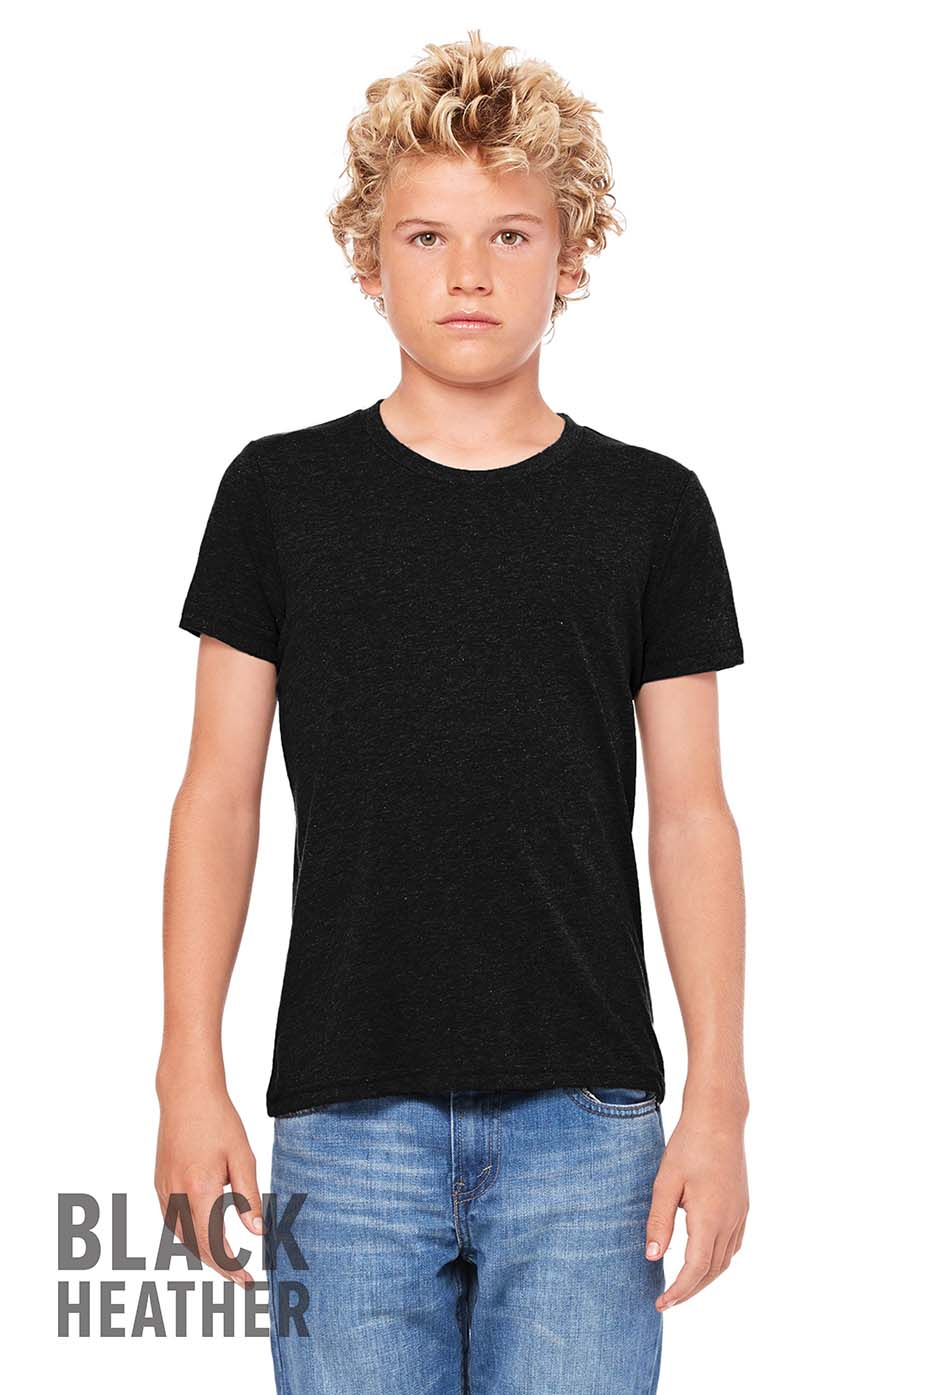 Youth black t shirt - Colors Available White